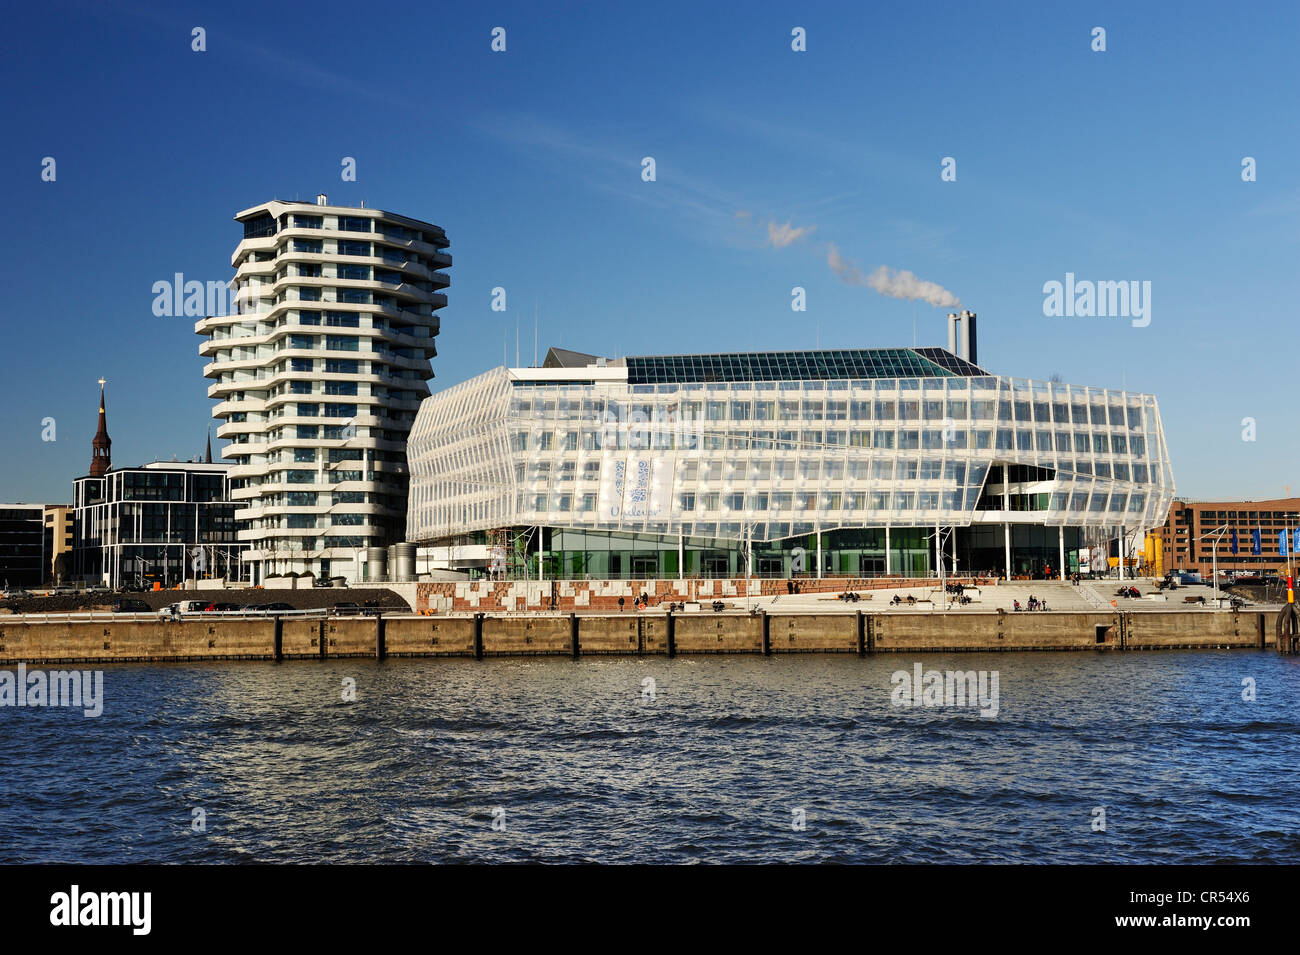 Unilever headquarter building and Marco Polo Tower, Strandkai in the Hafencity quarter of Hamburg, Germany, Europe - Stock Image